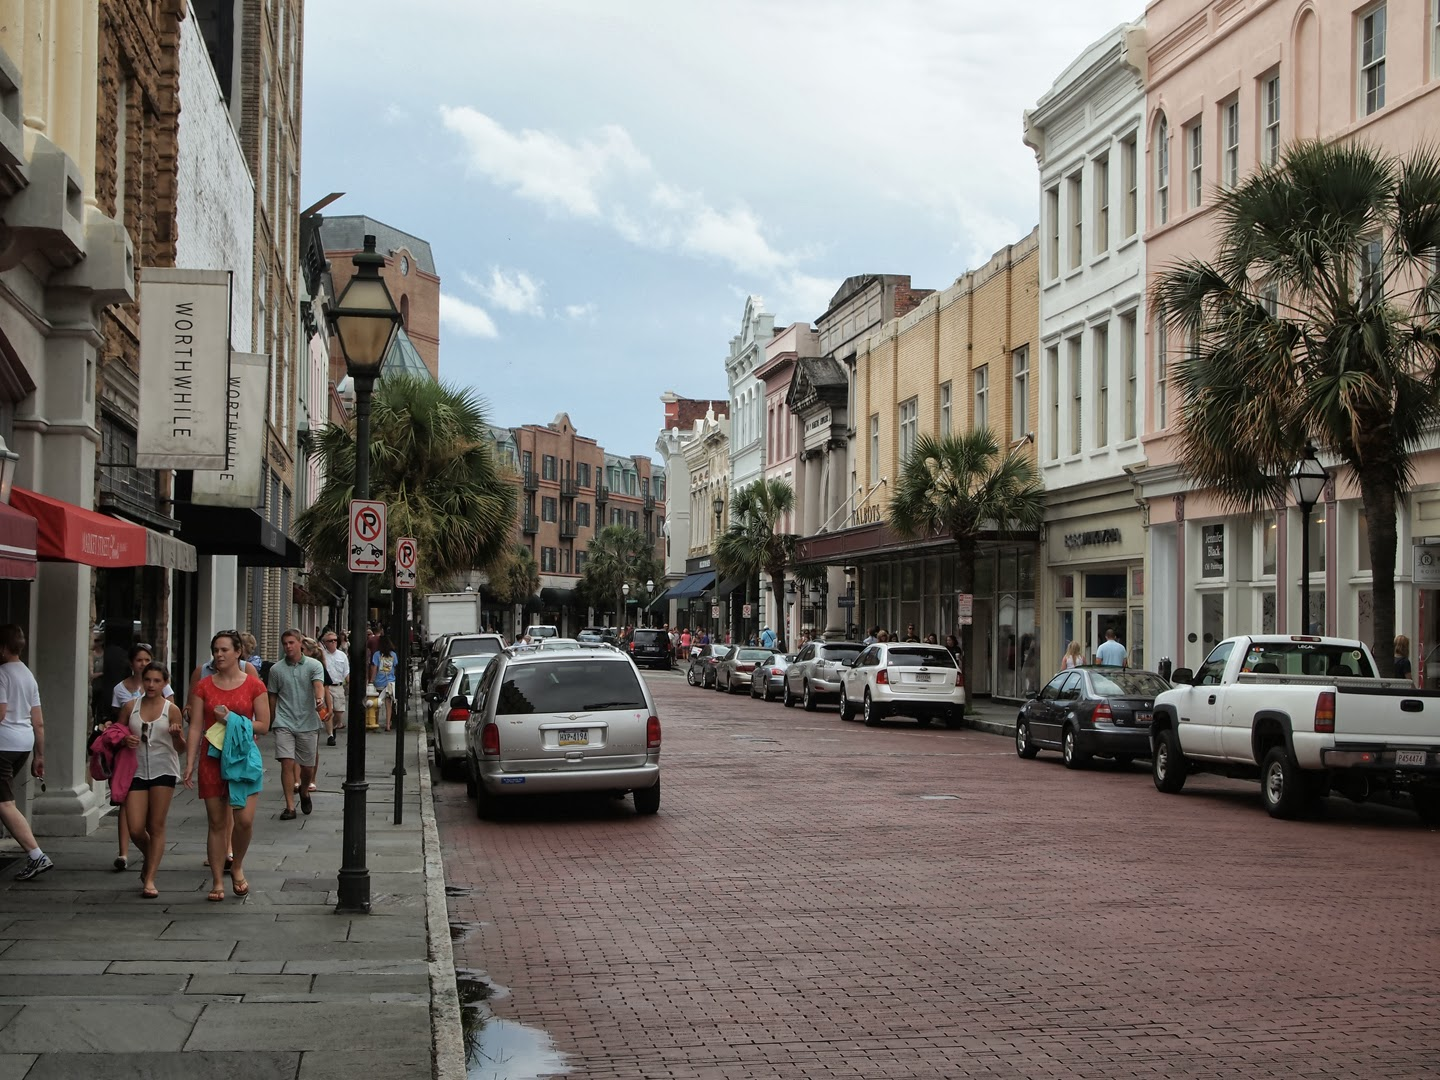 King Street Charleston Sc PC Android iPhone and iPad Wallpapers 1440x1080